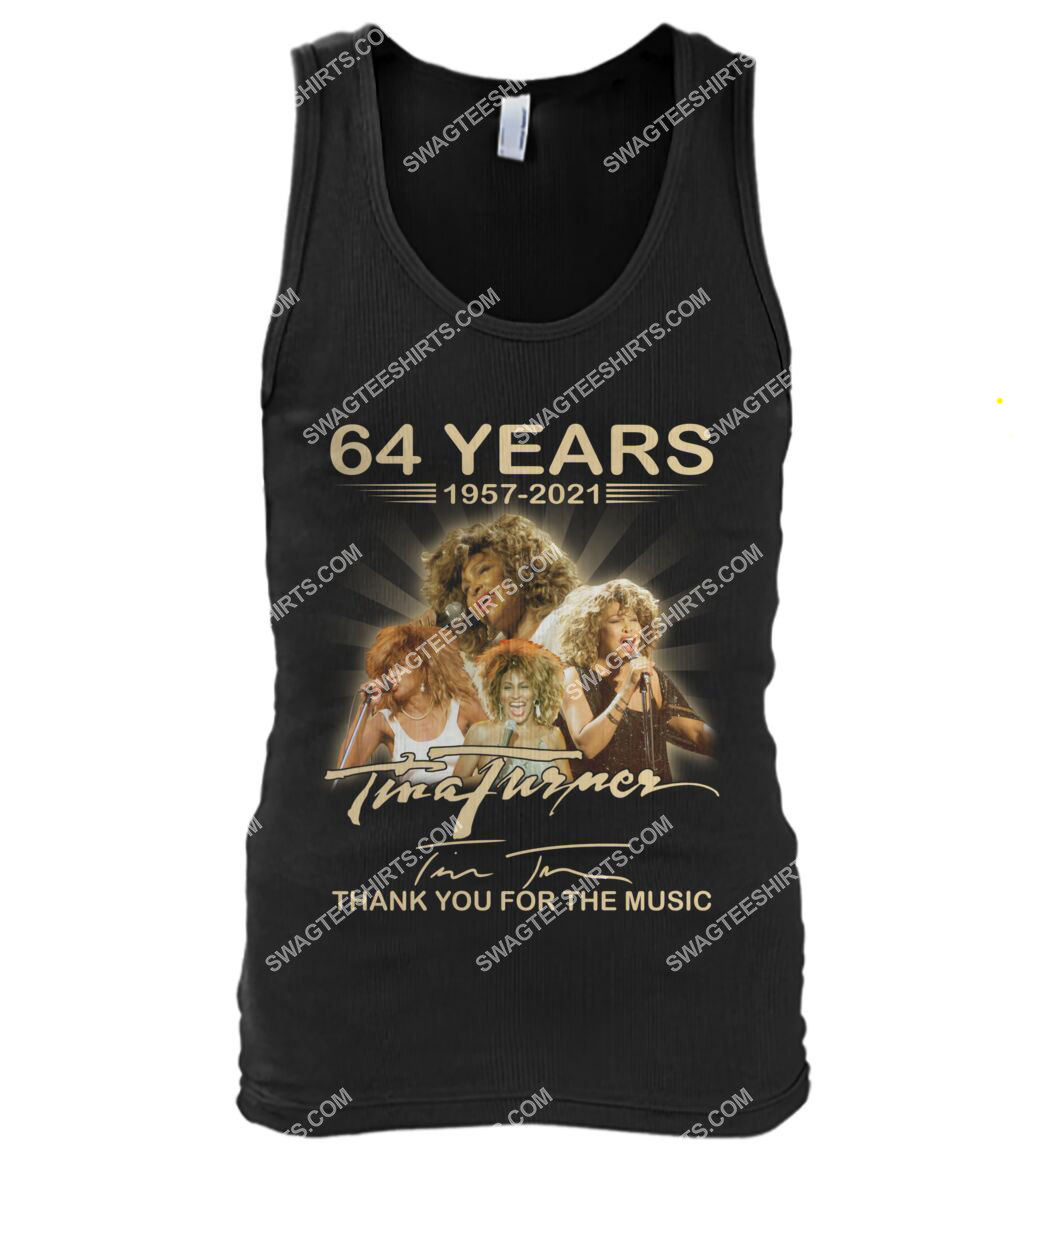 tina turner 64 years thank you for the music signature tank top 1